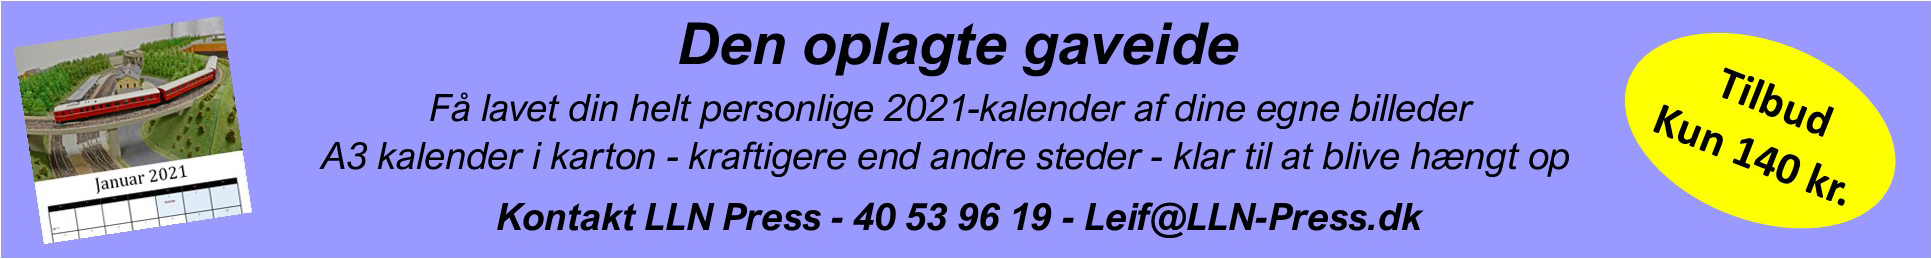 LLN Press - top - kalender 2021